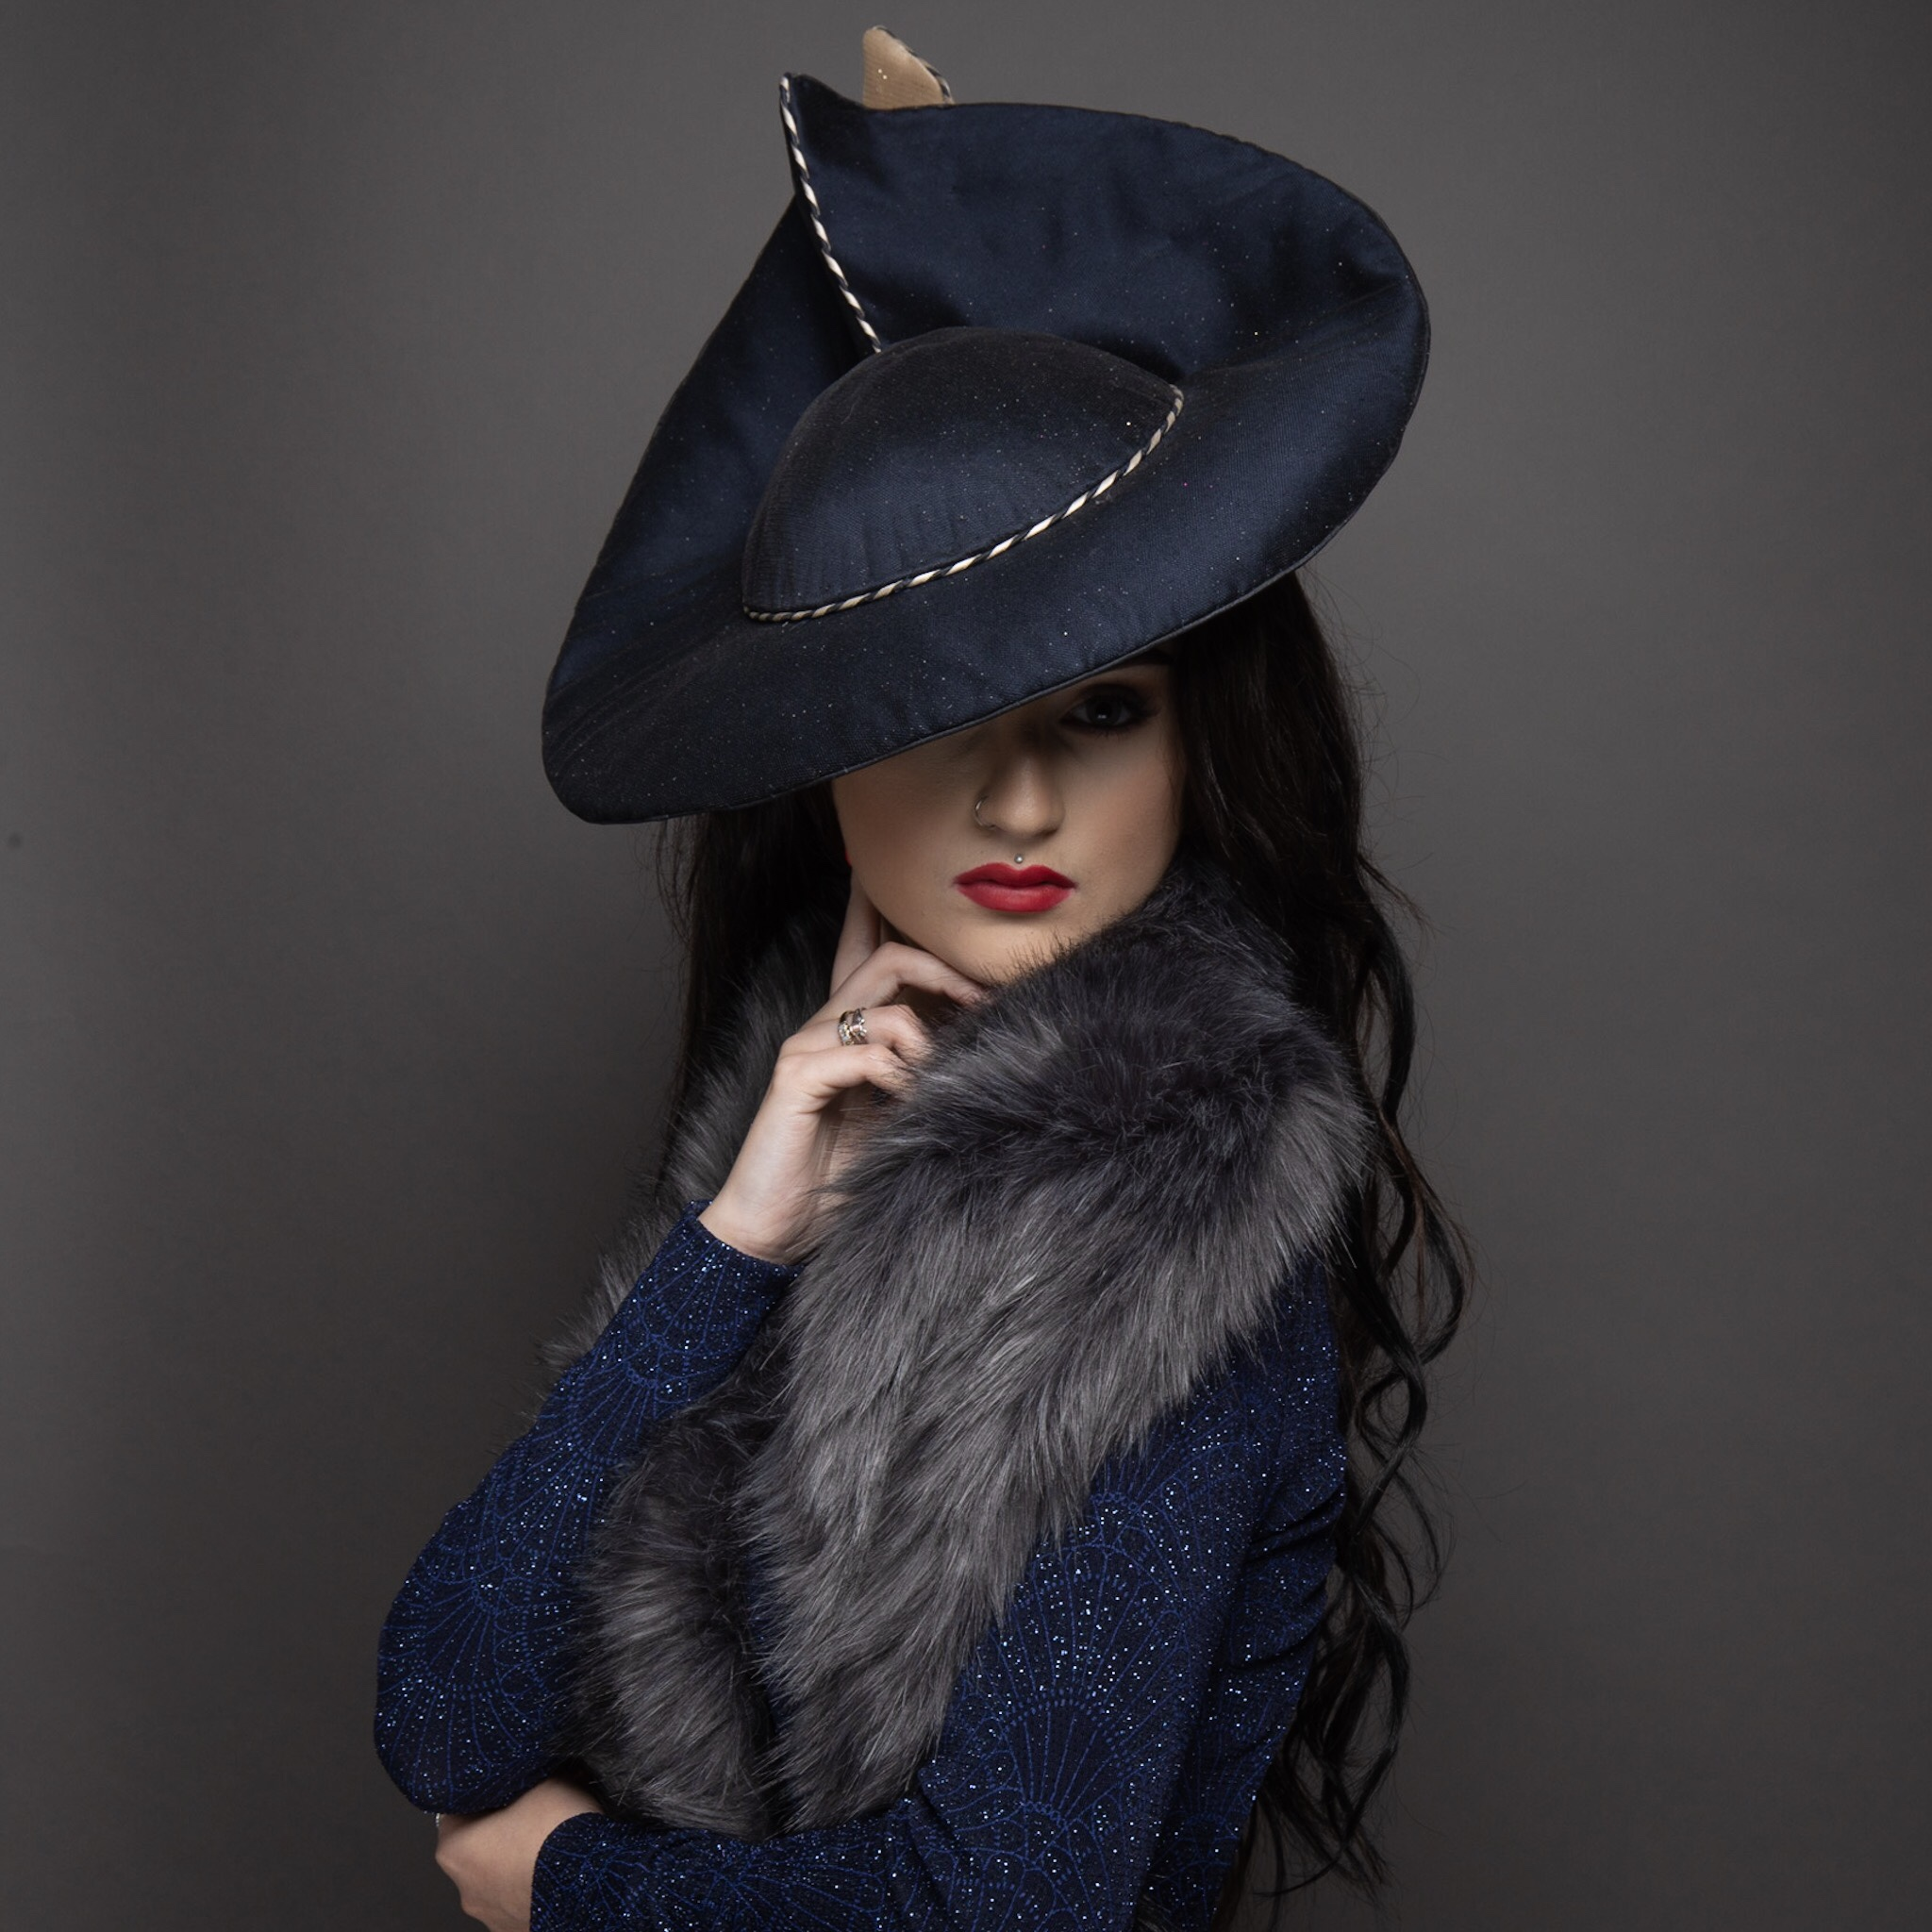 The Portrait Kitchen 'Velvet Rose' by Gemma Holley Millinery